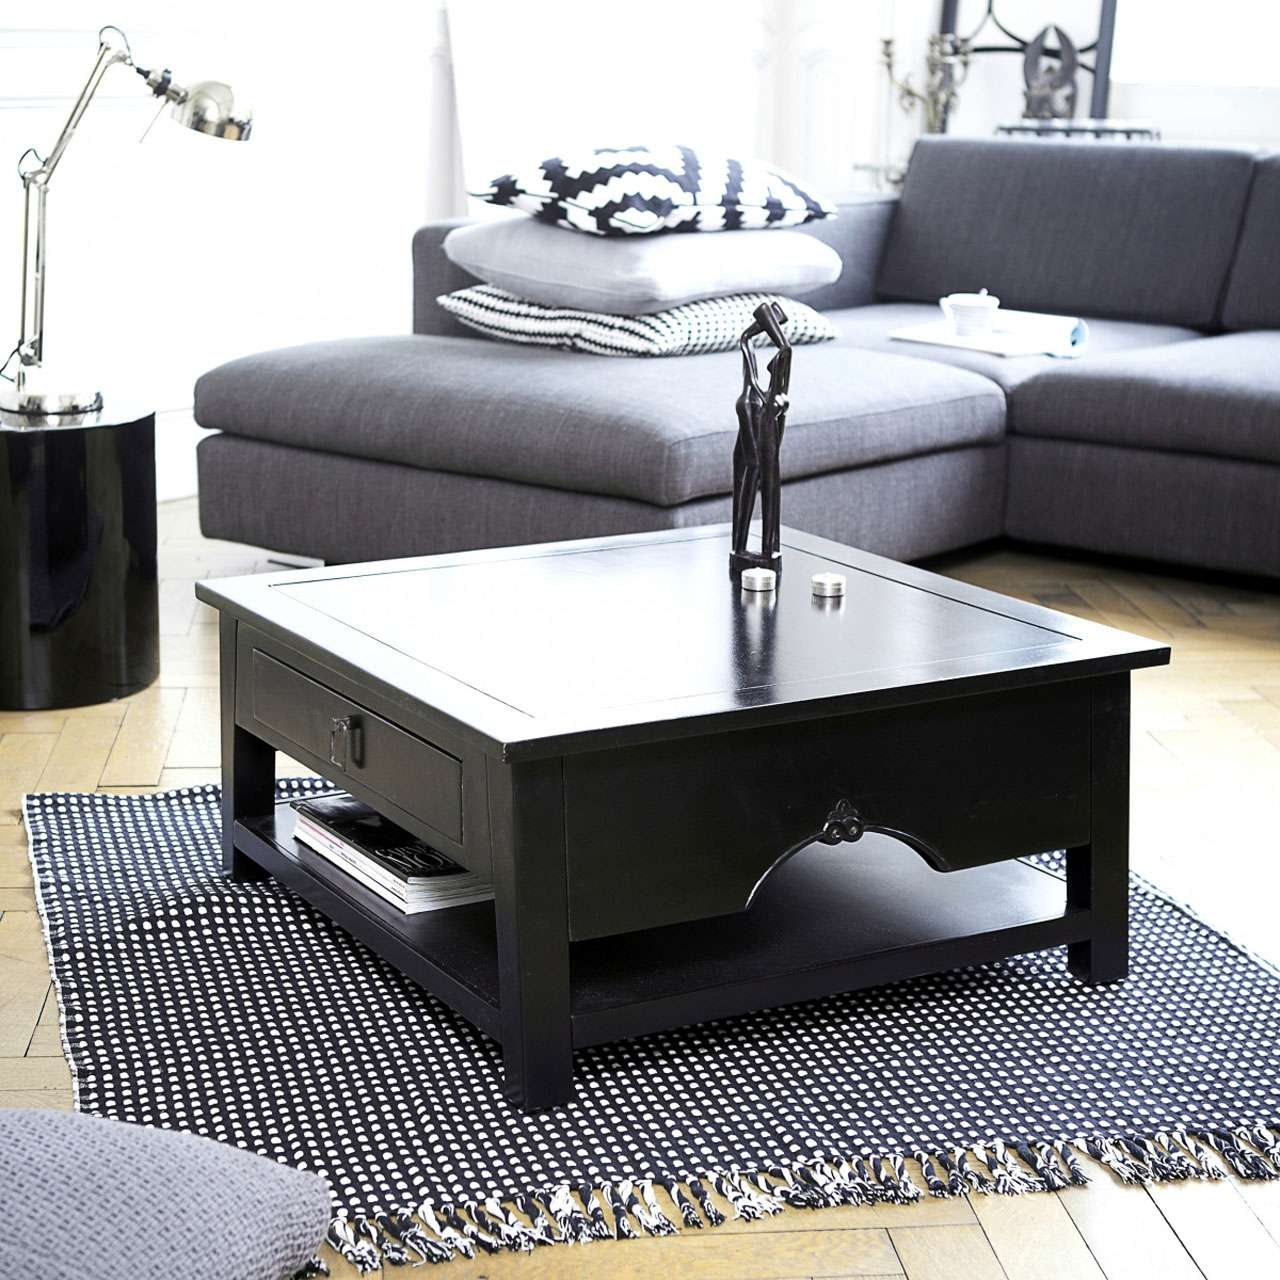 Square Coffee Table As Your Home Furnishing – Chocoaddicts Within Most Recent Square Black Coffee Tables (View 18 of 20)